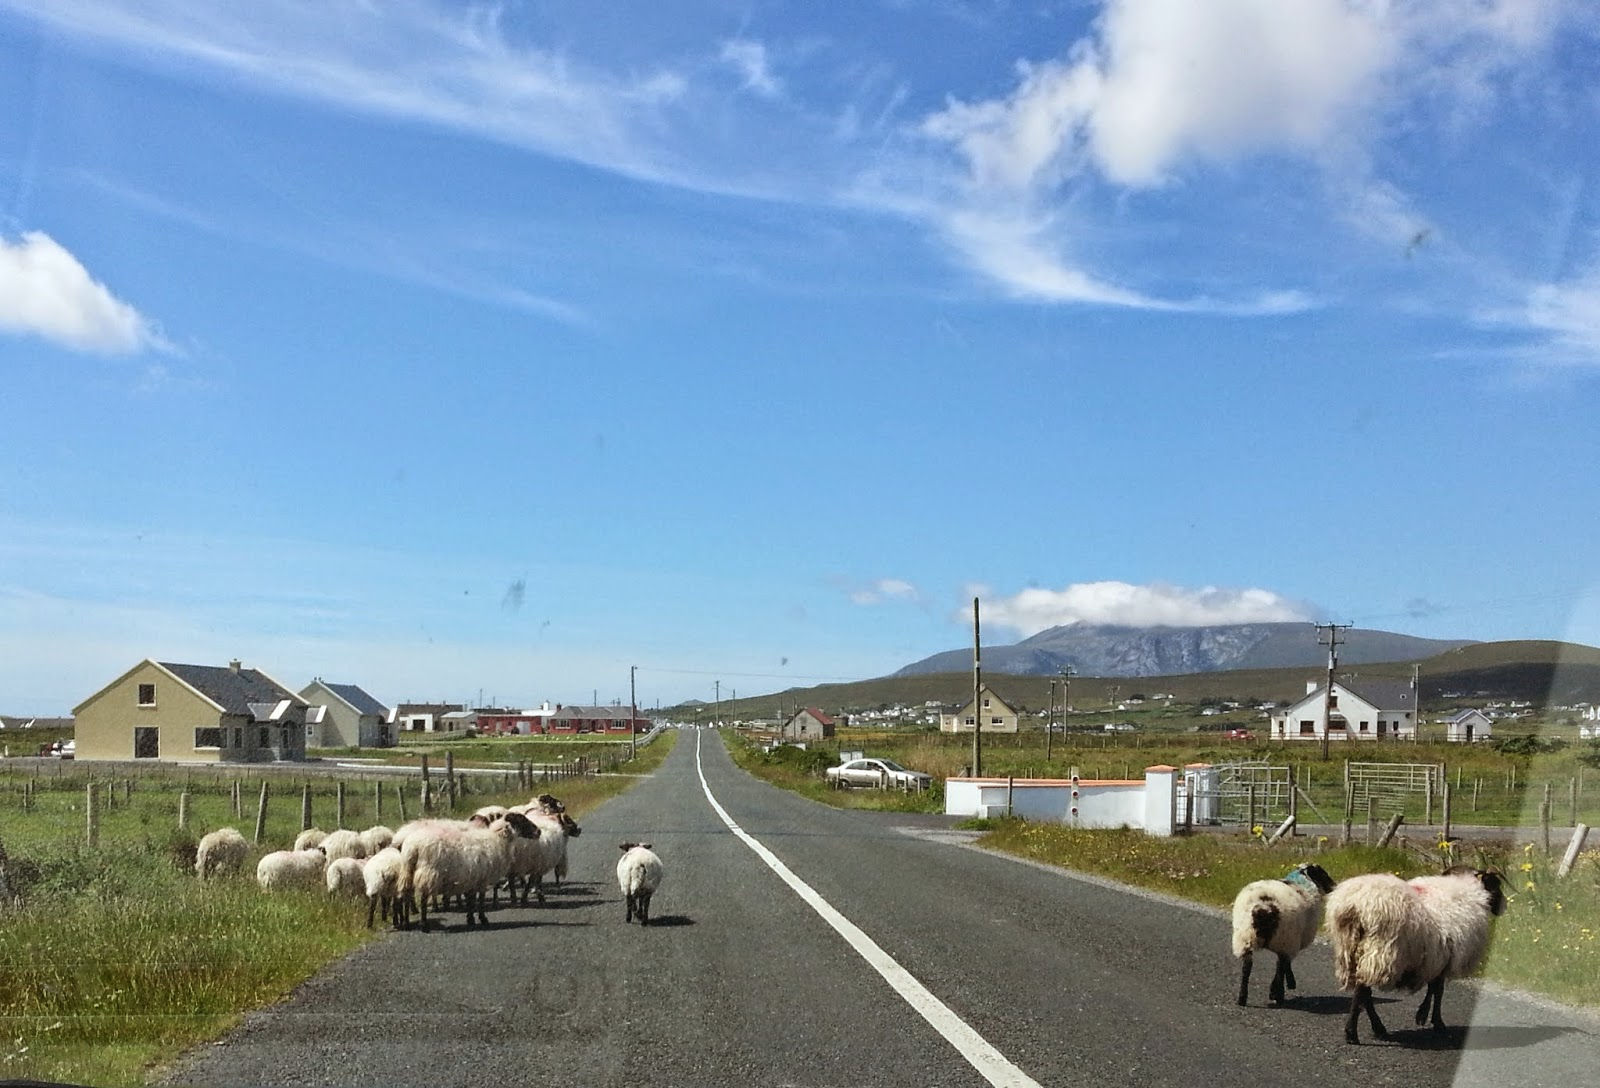 sheep on road, sunny day, blue sky, wispy clouds